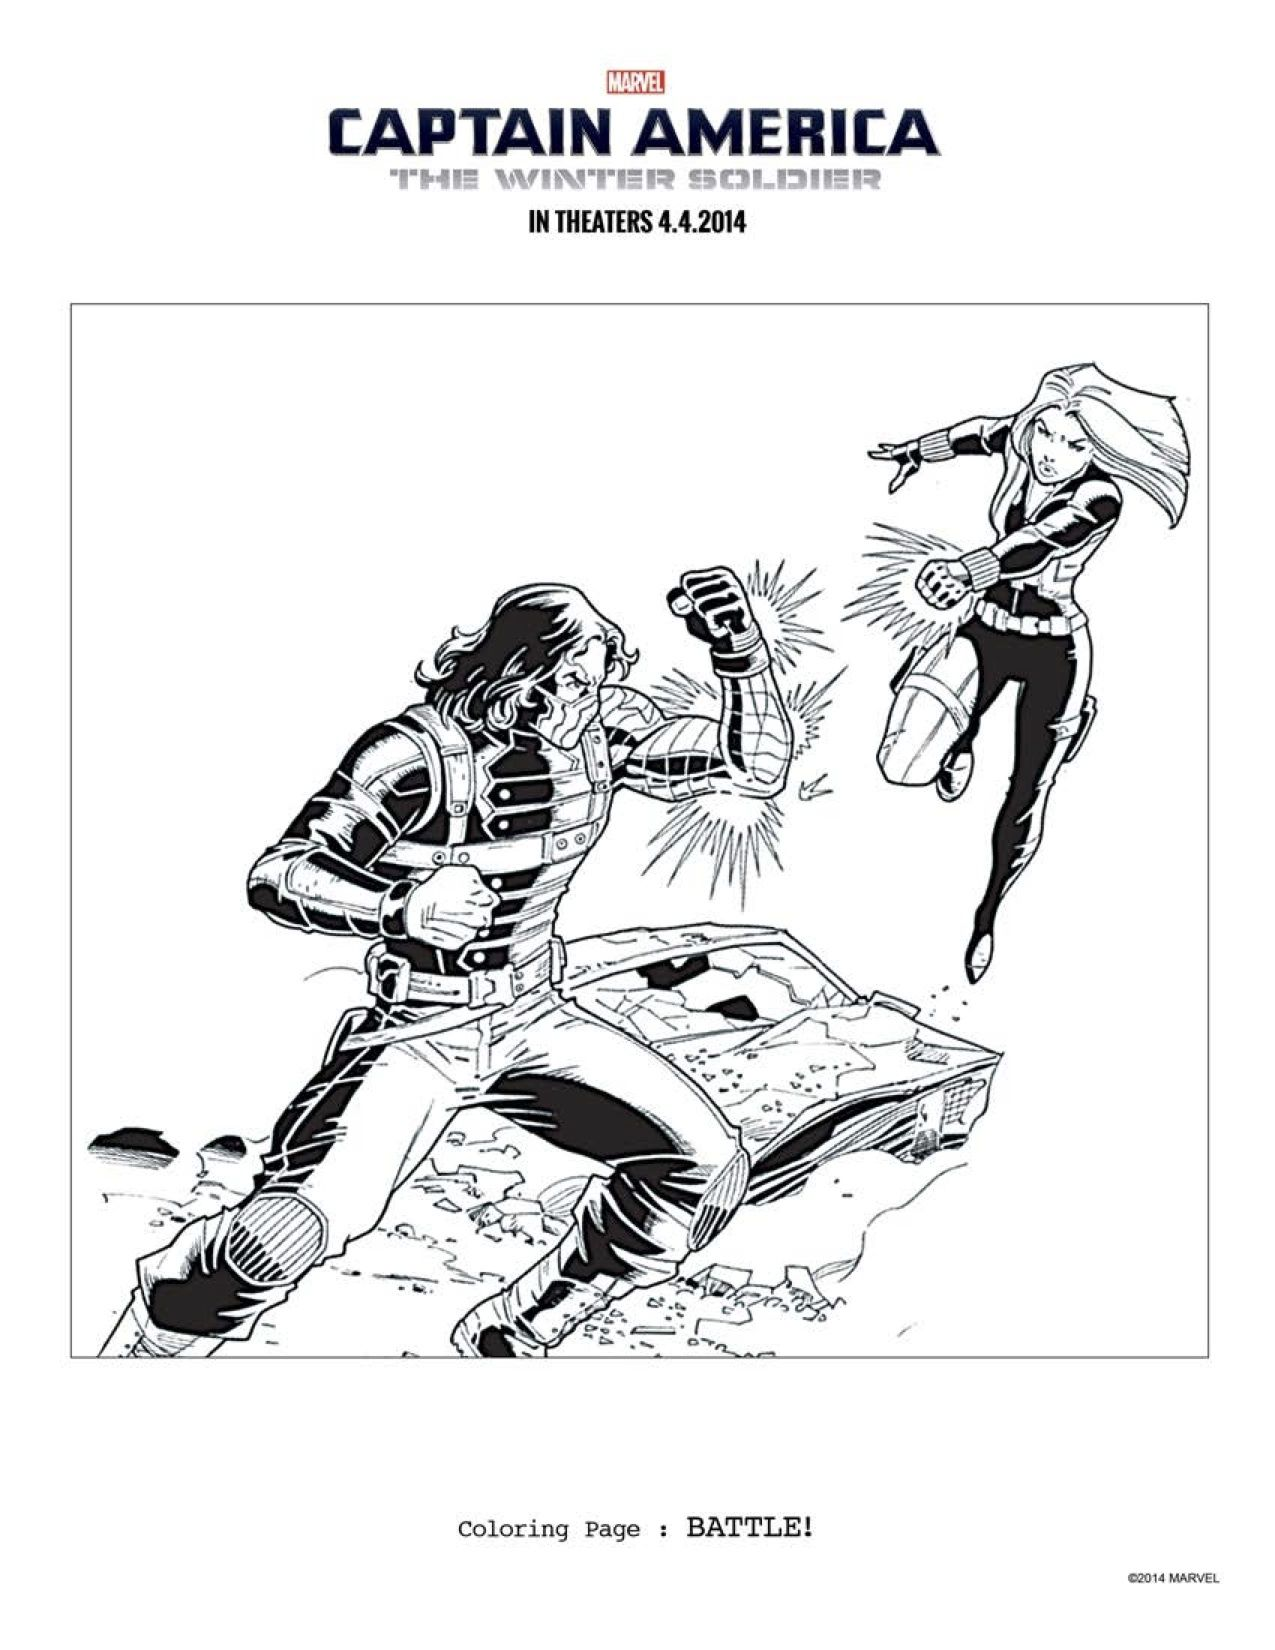 8 CAPTAIN AMERICA THE WINTER SOLDIER Coloring Sheets To Keep Everyone Occupied Until April